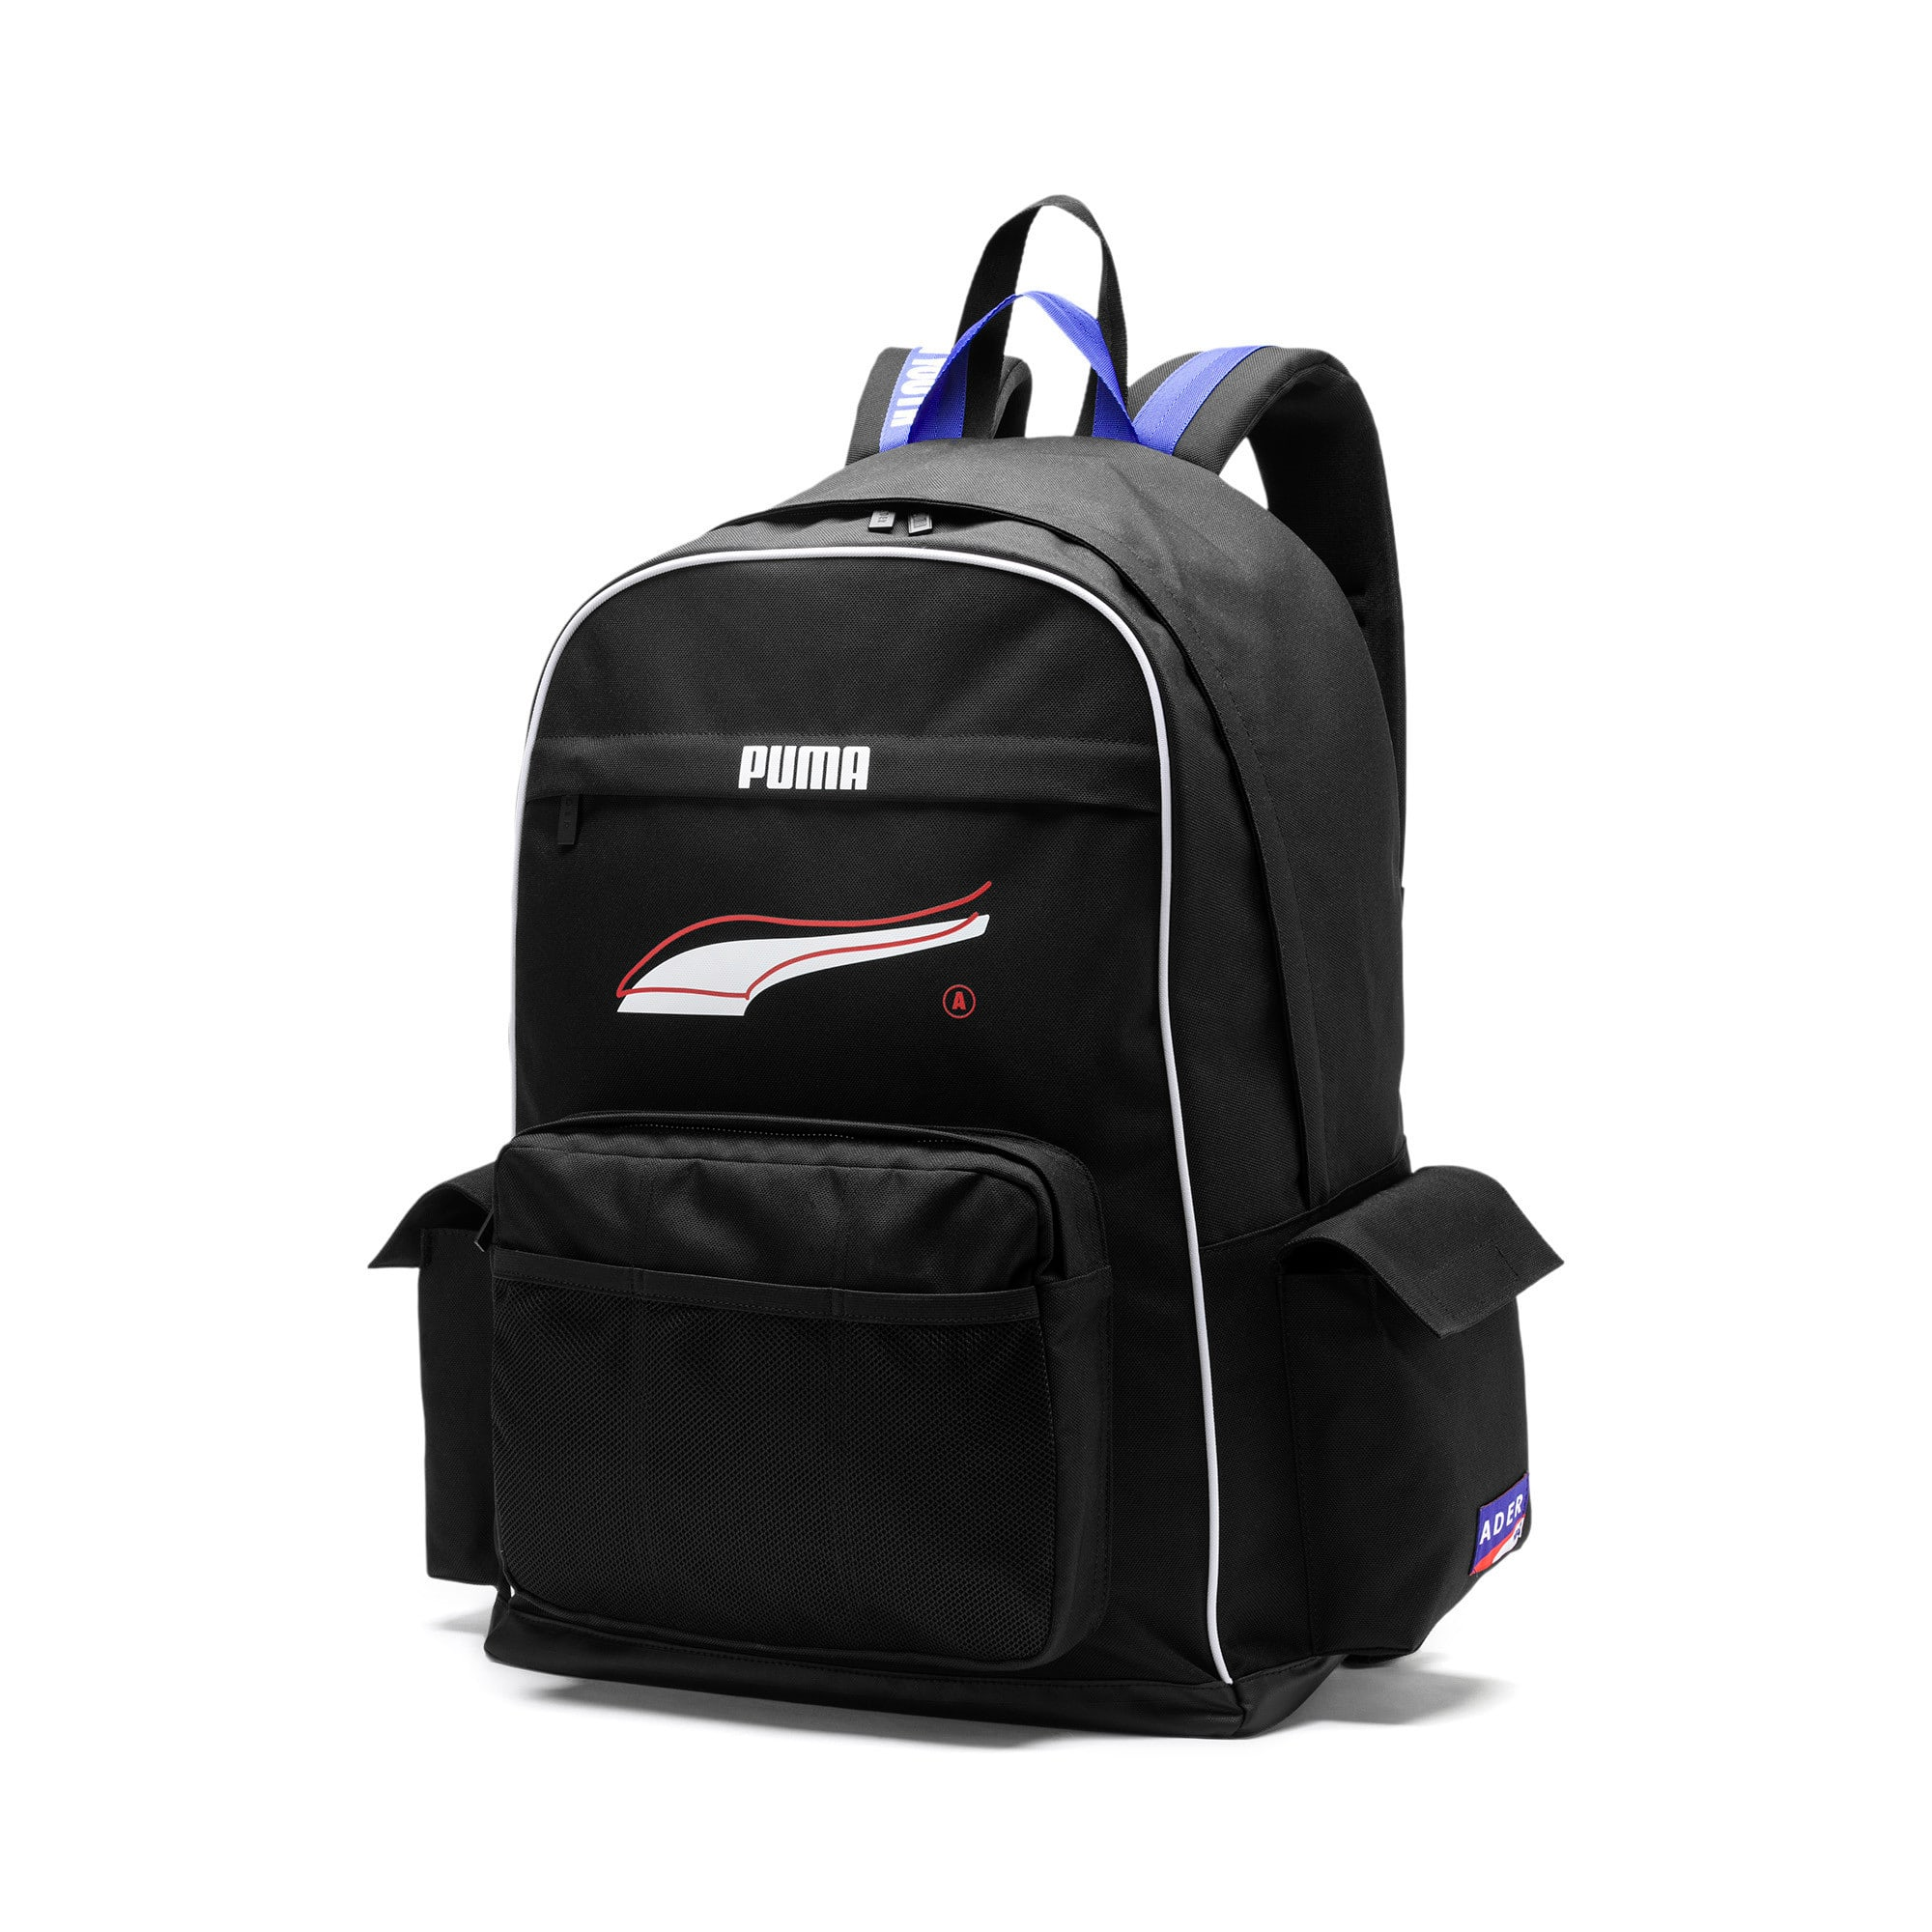 Thumbnail 1 of PUMA x ADER ERROR Rucksack, Puma Black, medium